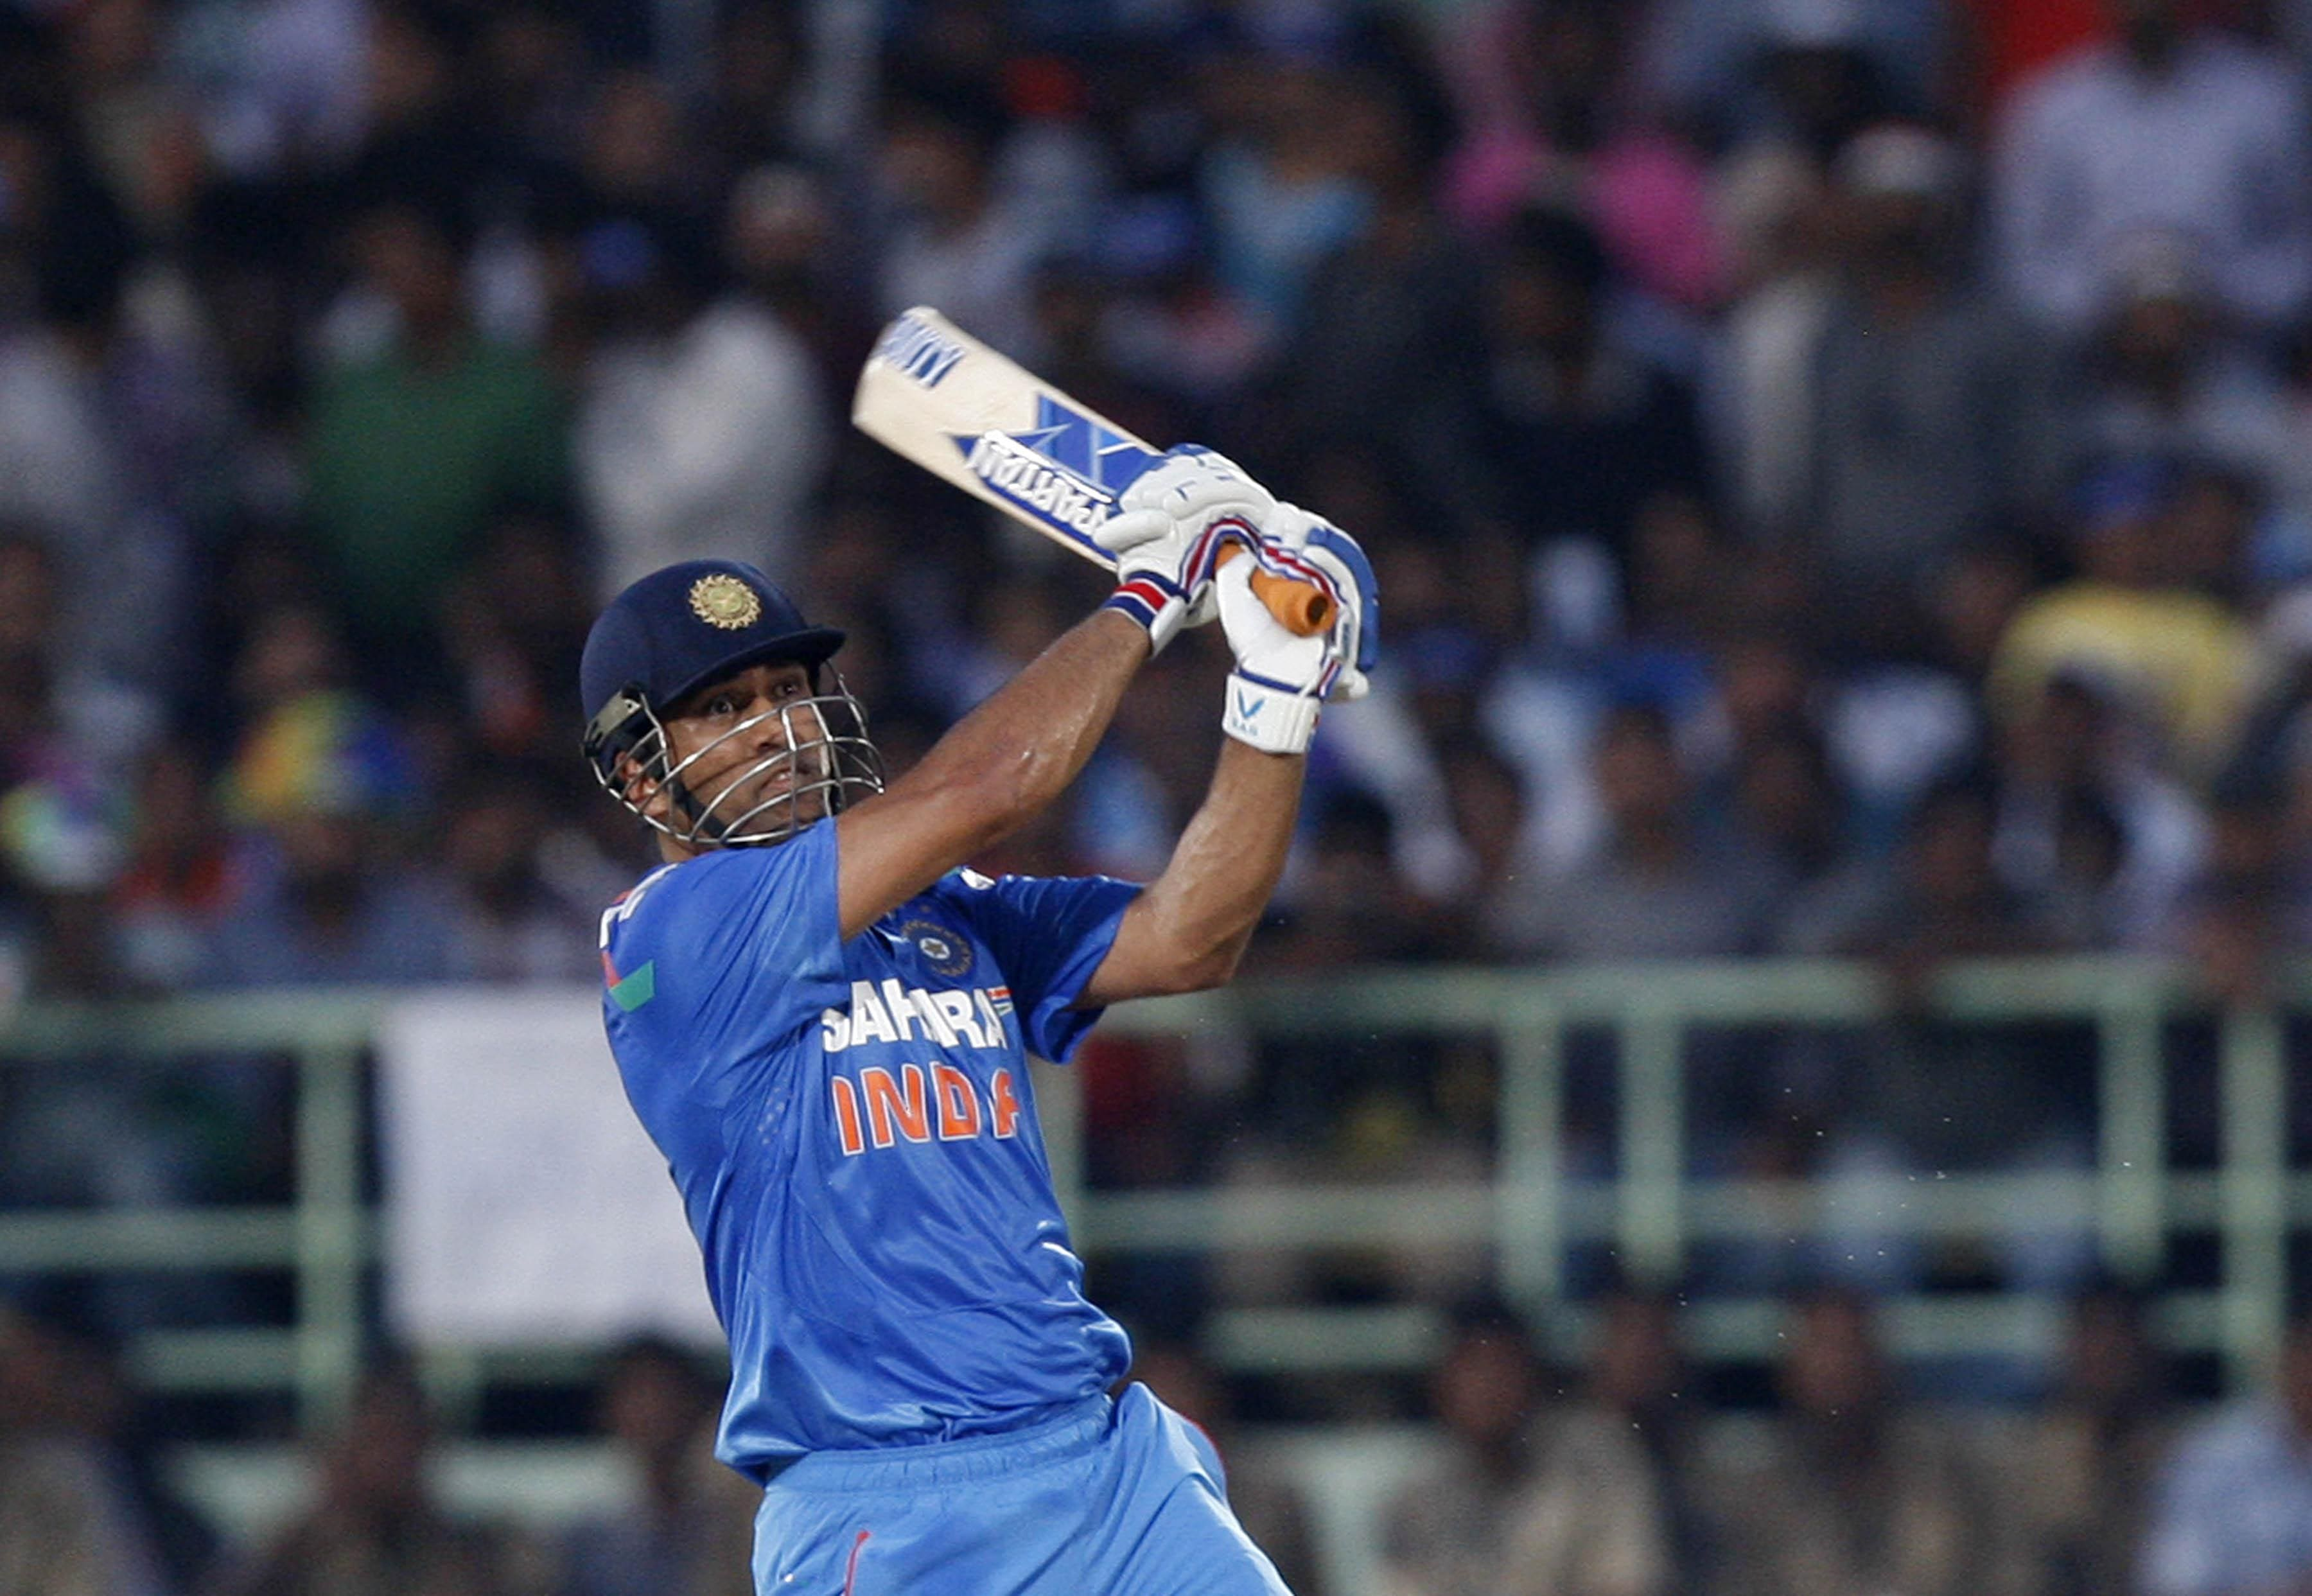 West Indies Hd Wallpapers Ms Dhoni Strikes Bat Deal Worth 25 Crores Cricket Country